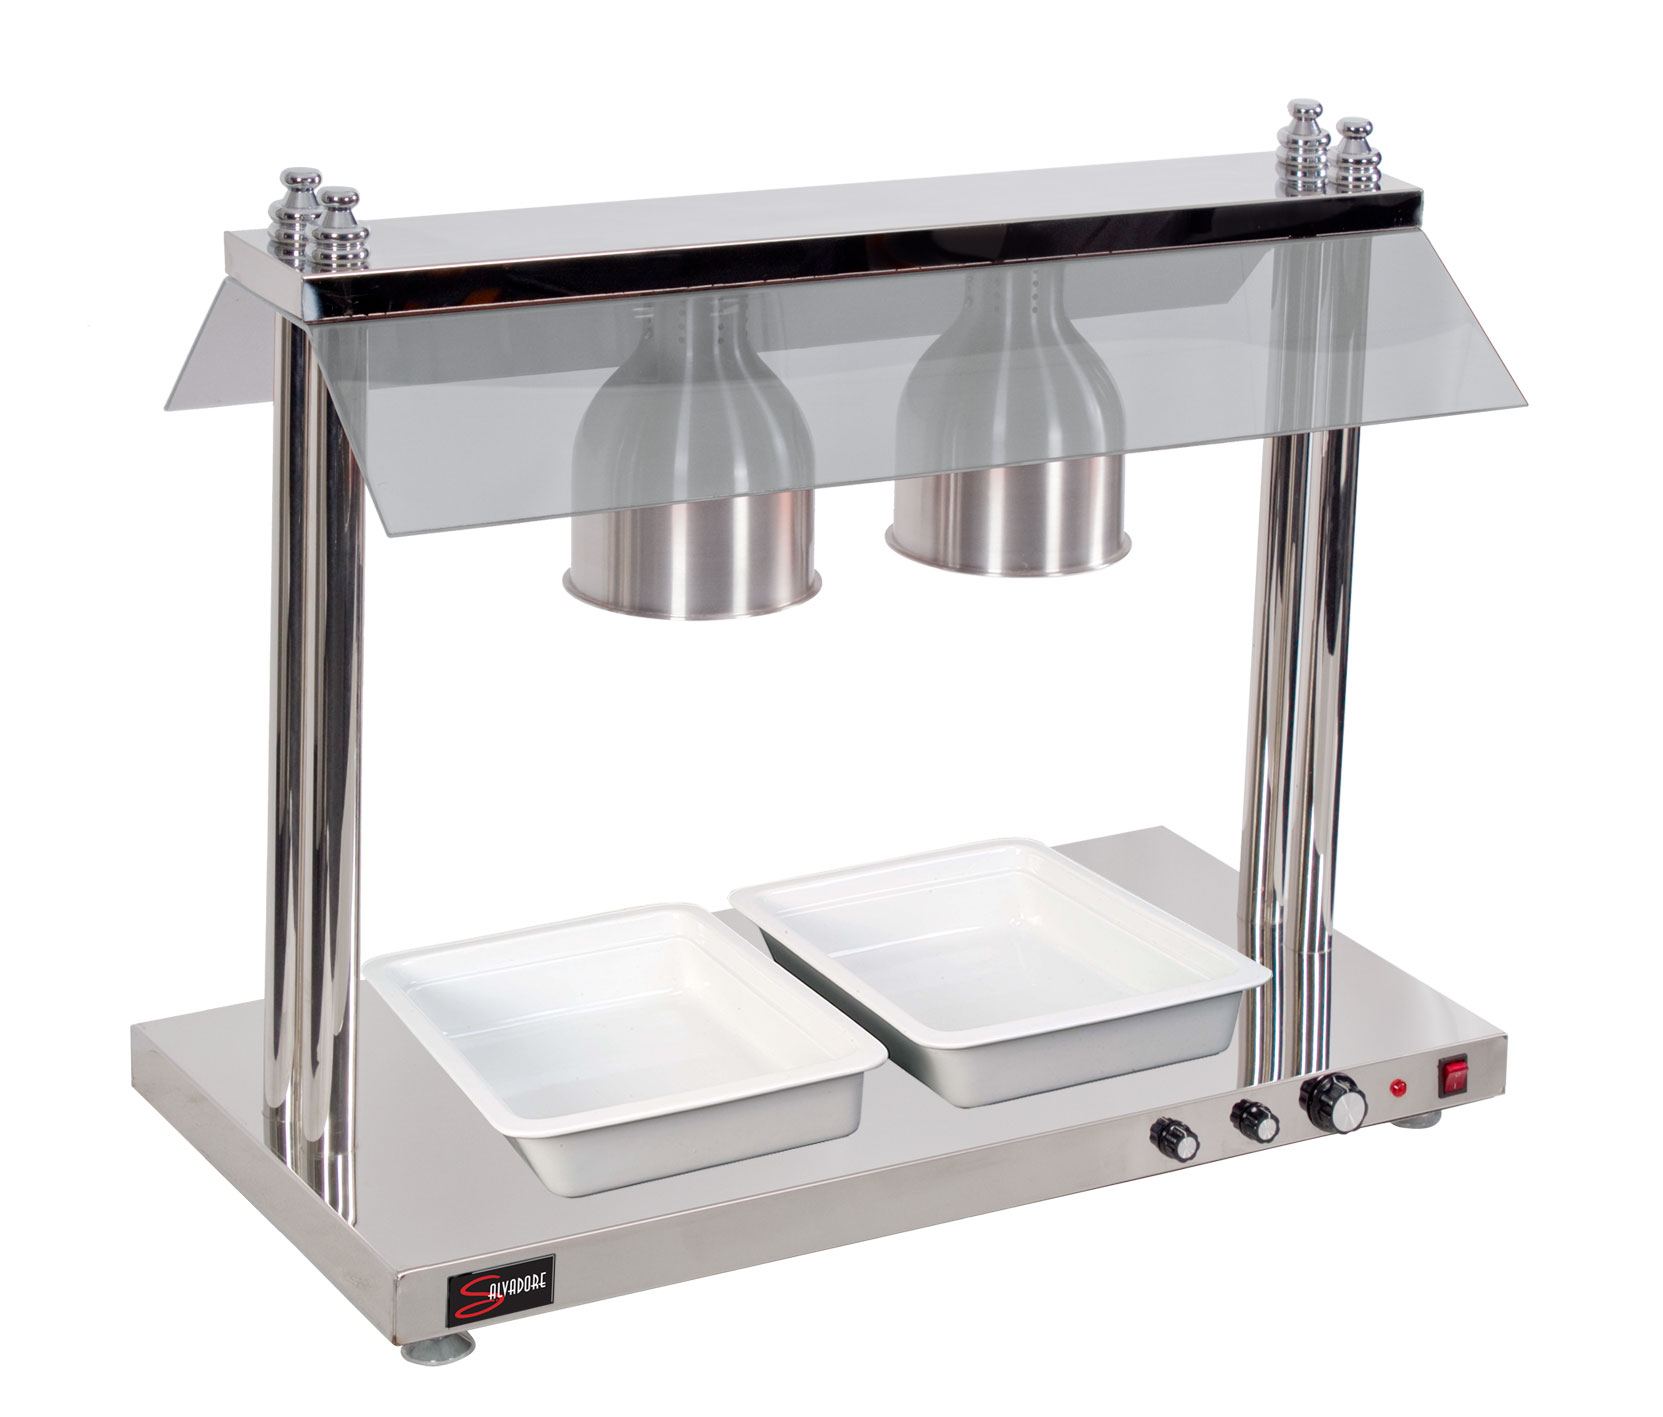 HEATED FOOD DISPLAY STATION SALVADORE - 2 LIGHT - WITH HEATED BASE